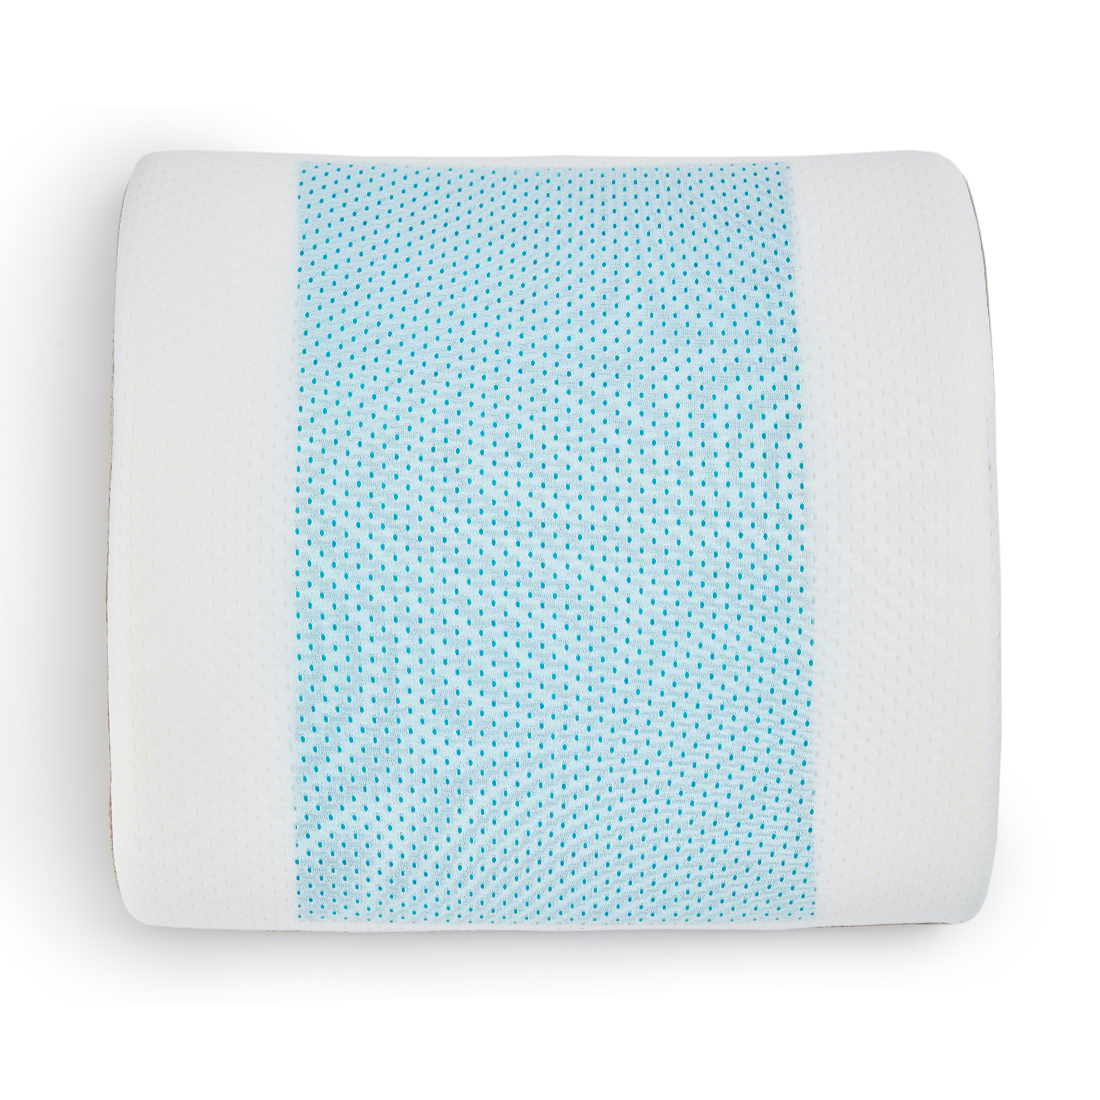 Memory Foam Lumbar Gel Pillow Memory Foam Memory Foam Pillows in Memory Foam Colour by Living Essence